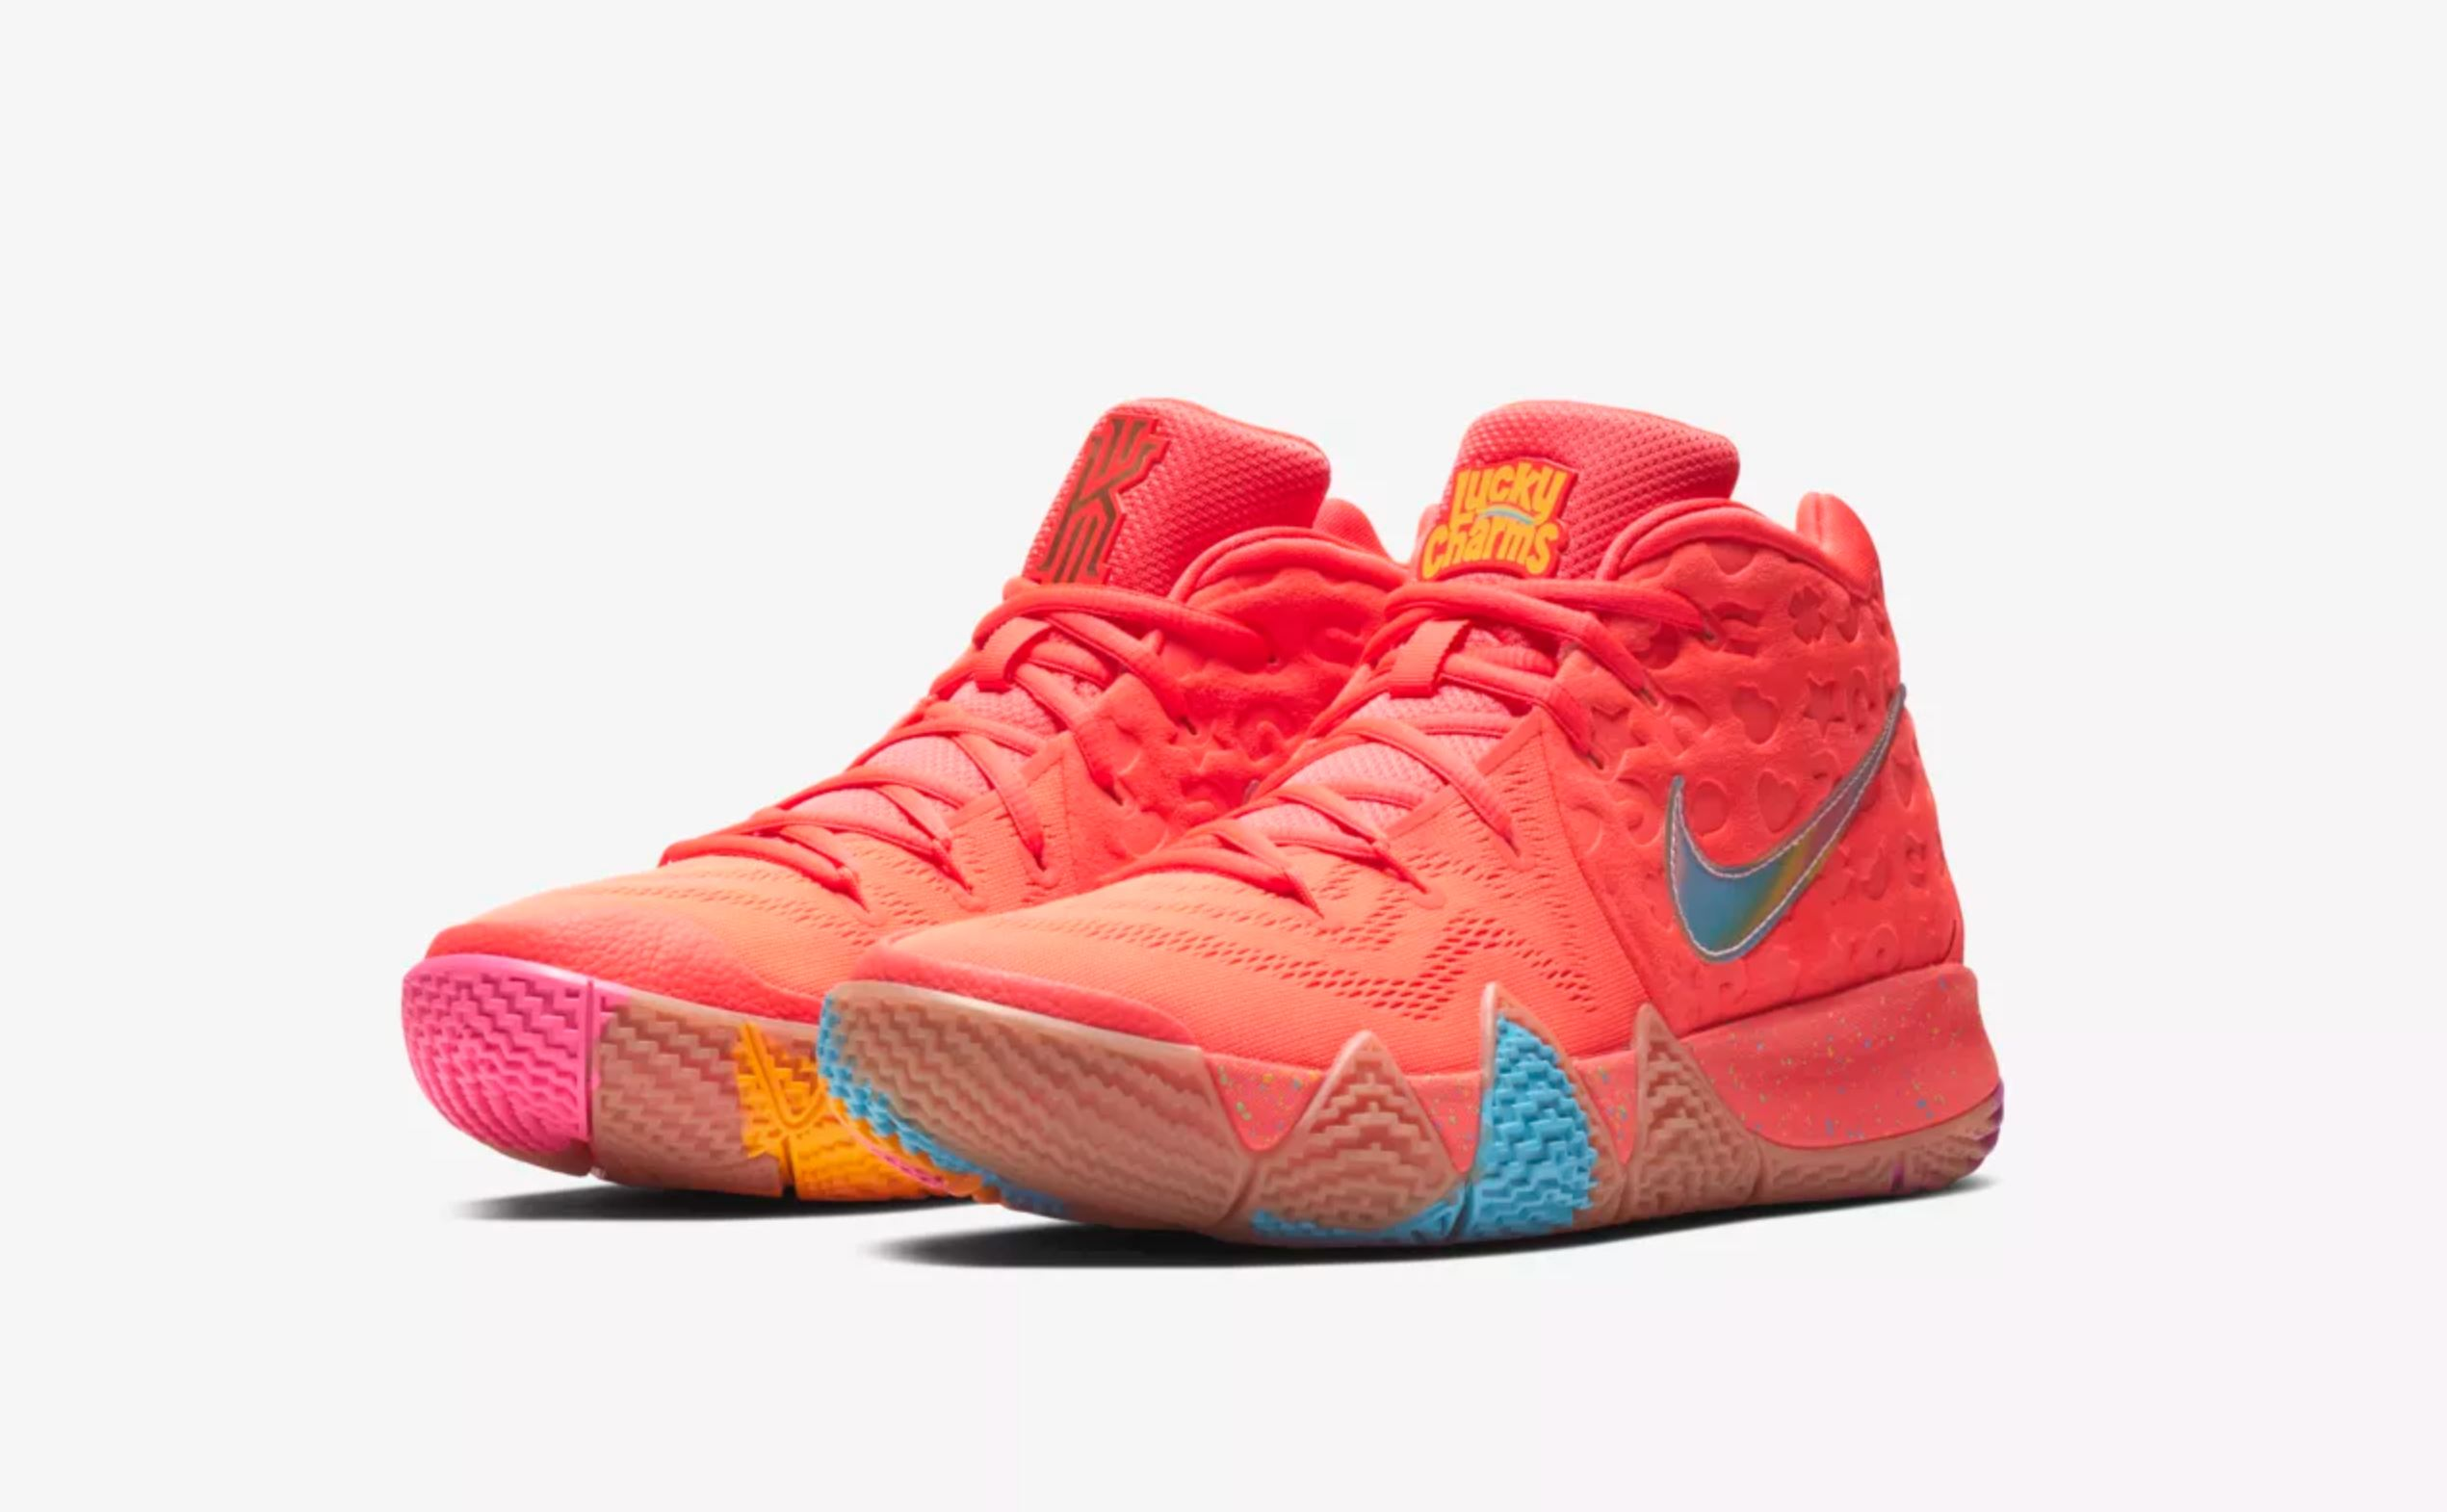 online store 94233 41d4c Nike Unveils Kyrie 4 'Cereal Pack' with Lucky Charms, Kix ...